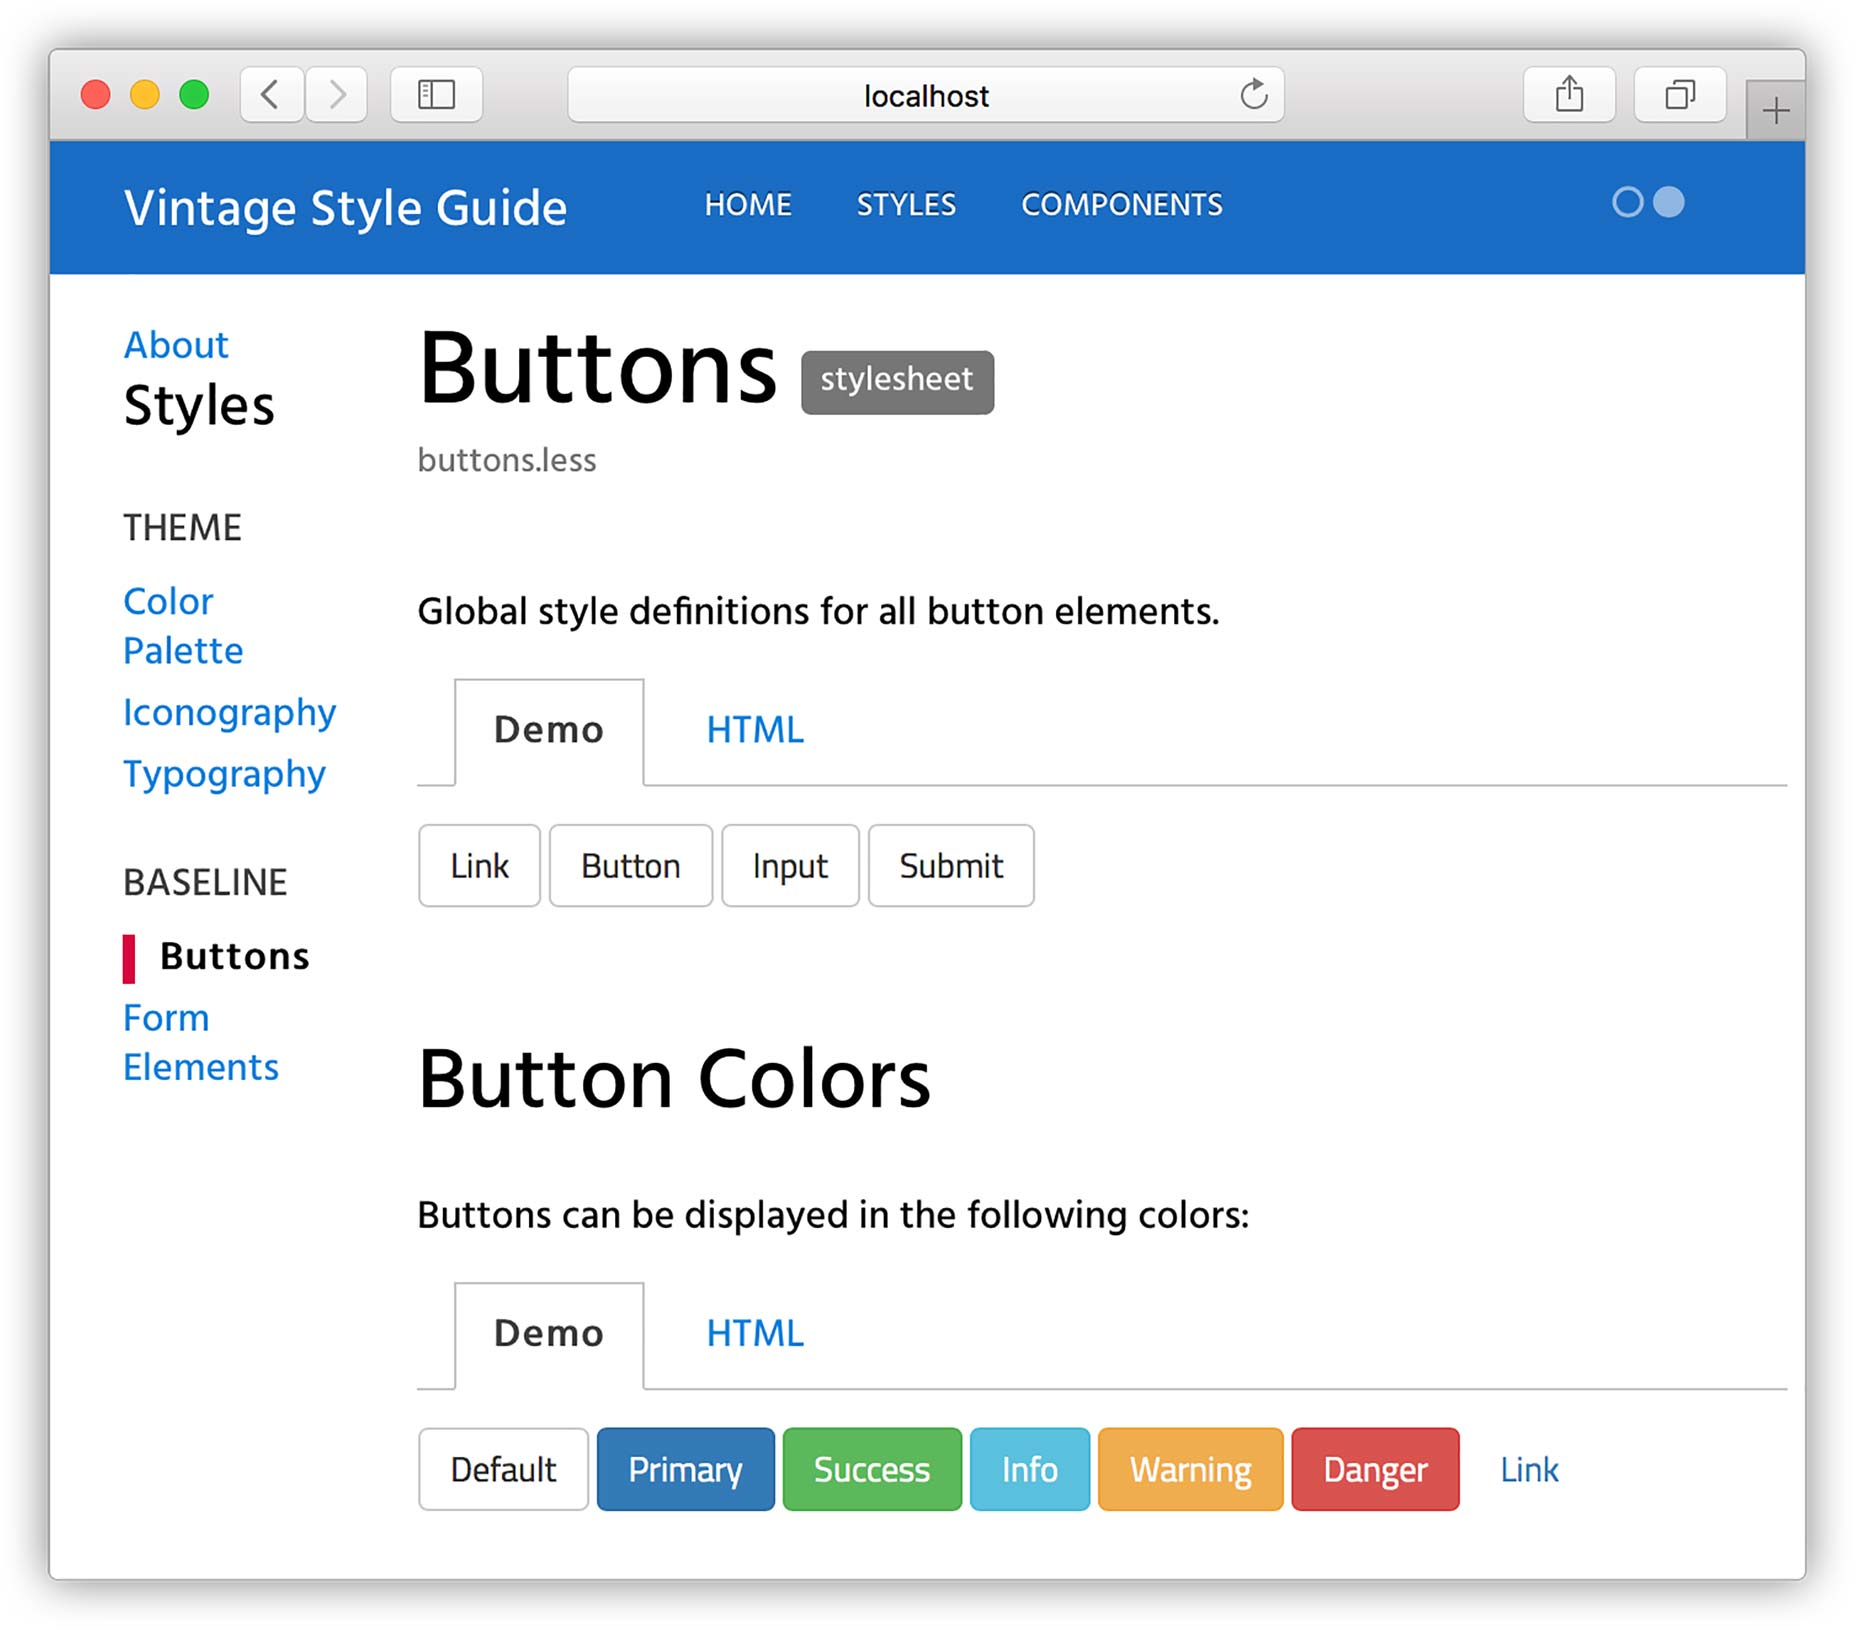 8-style-guide-buttons-5